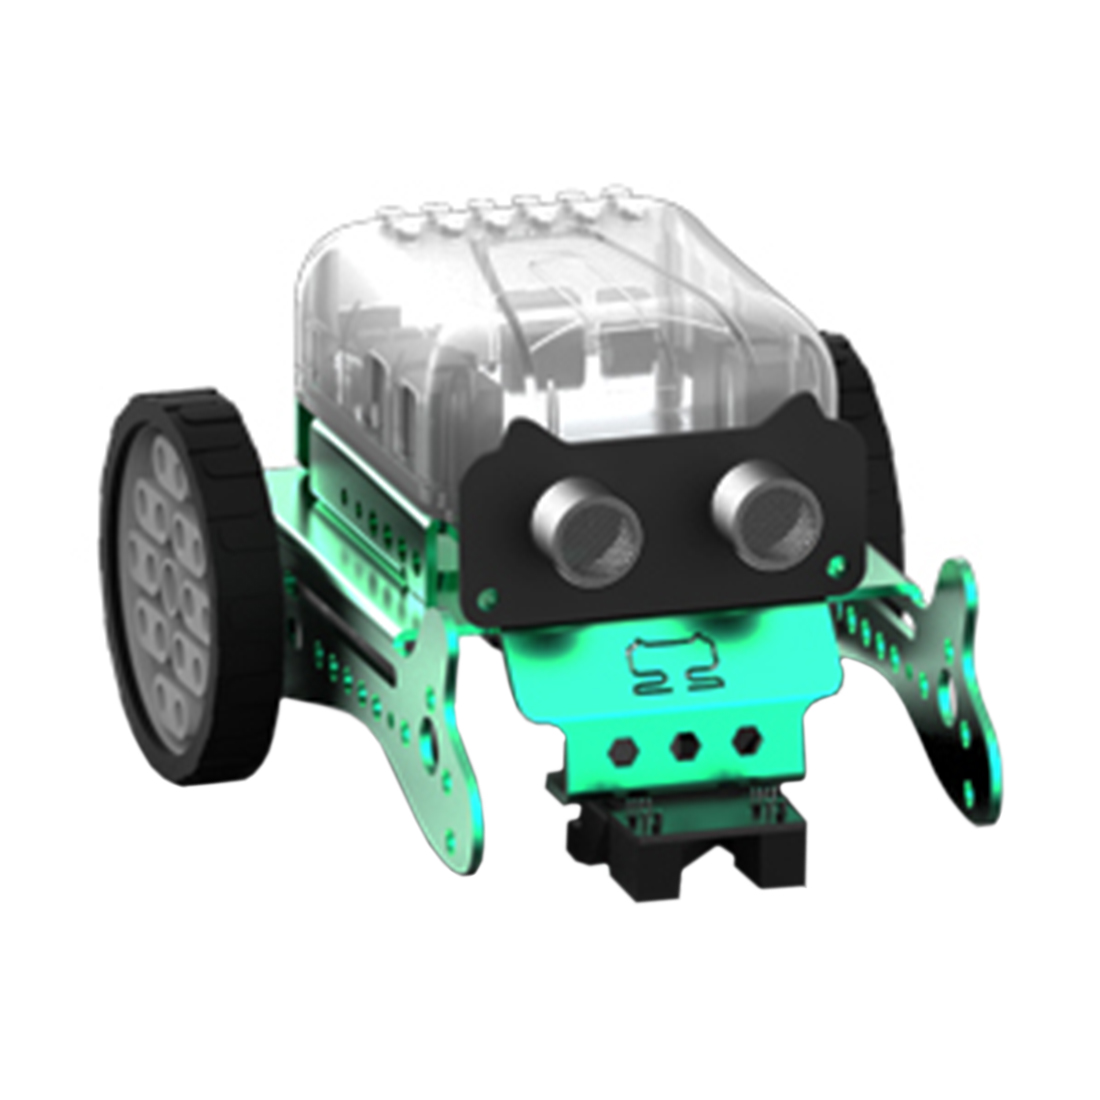 DIY Neo Programming Scratch Intelligent Obstacle Avoidance Car Robot Kit For Kids Gift Toy Model Mini Smart Robot - Green Red